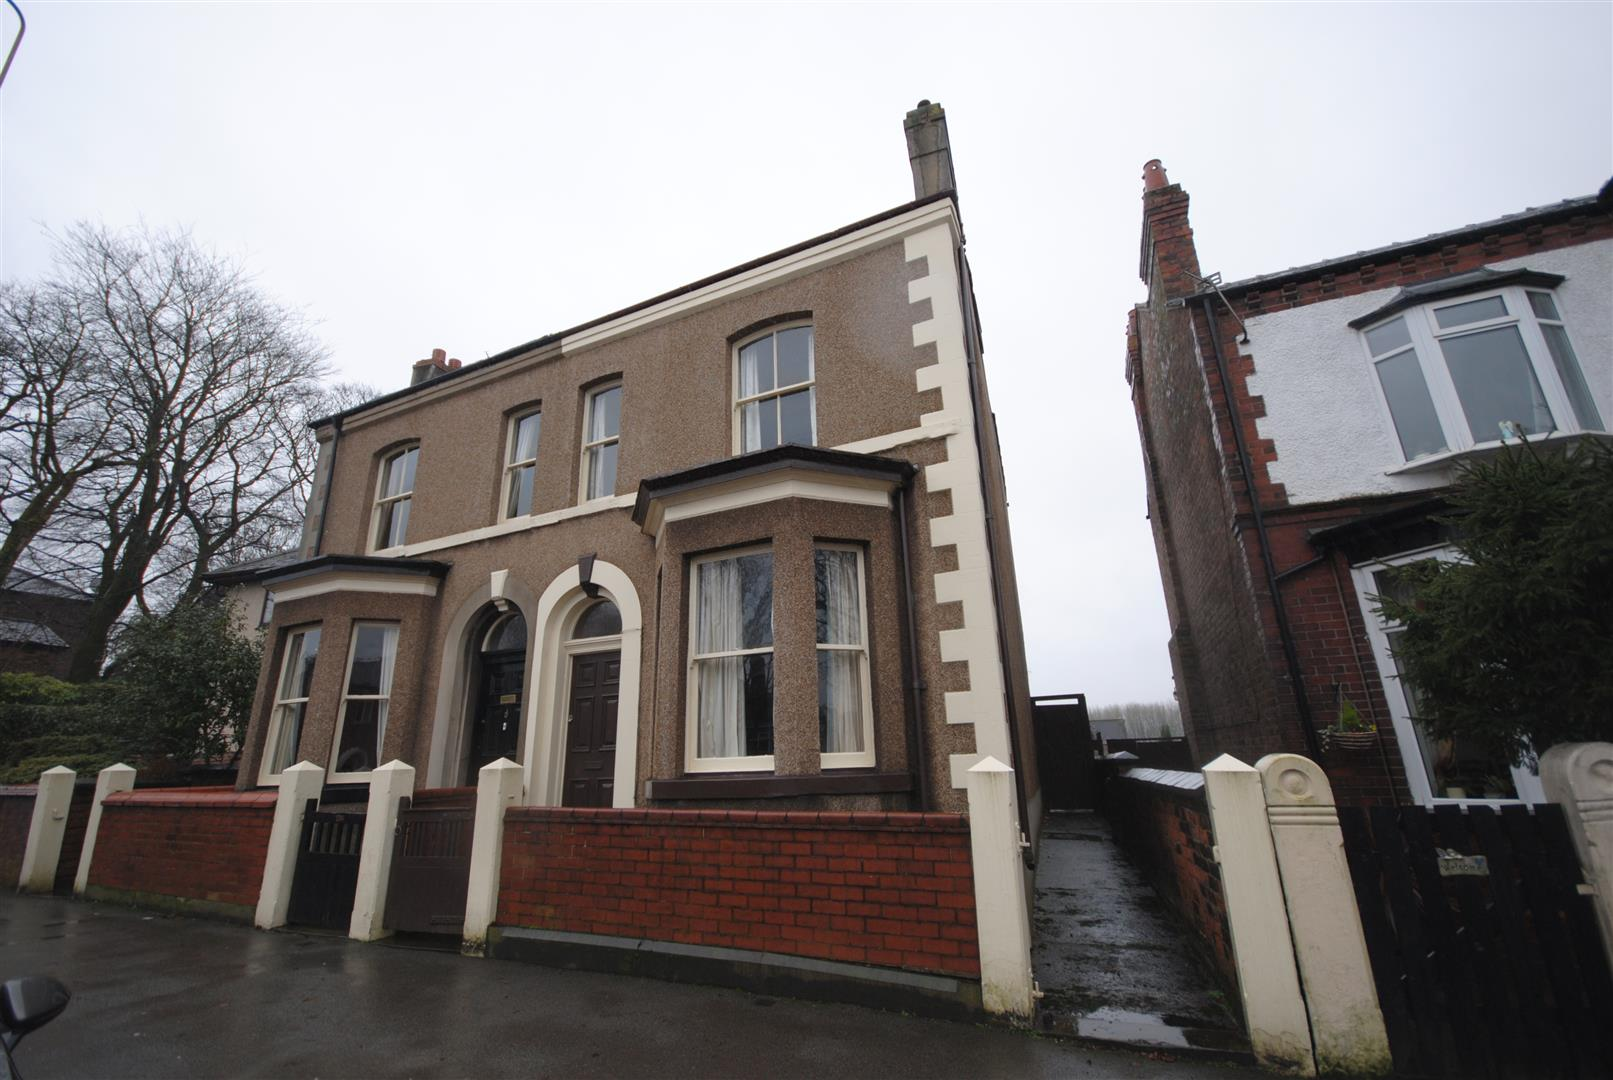 3 Bedrooms Semi Detached House for sale in Wigan Lane, Wigan